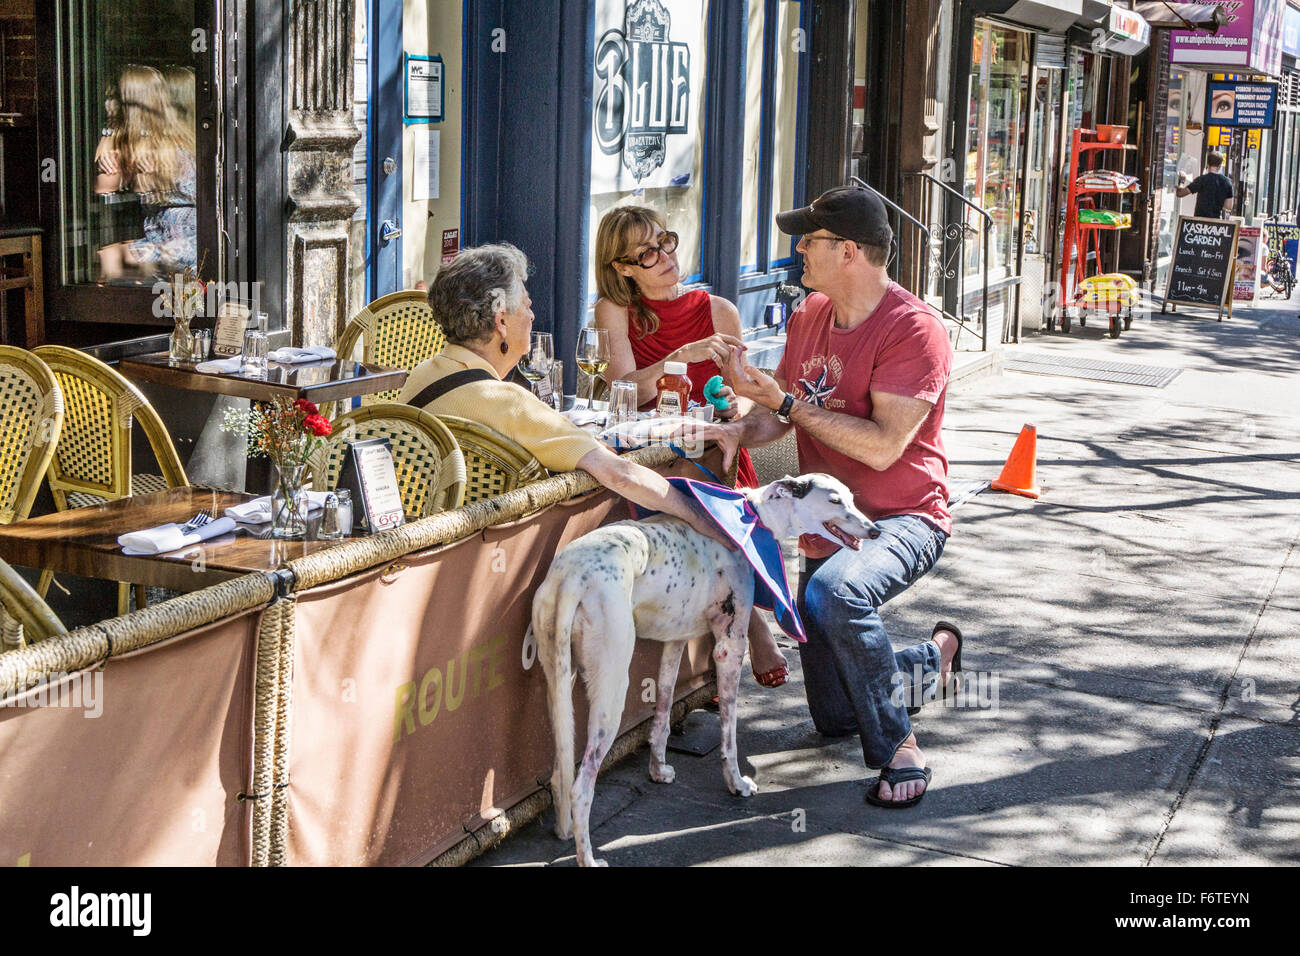 casually dressed man kneels on Ninth avenue sidewalk to chat with with 2 women friends lunching at sidewalk cafe - Stock Image